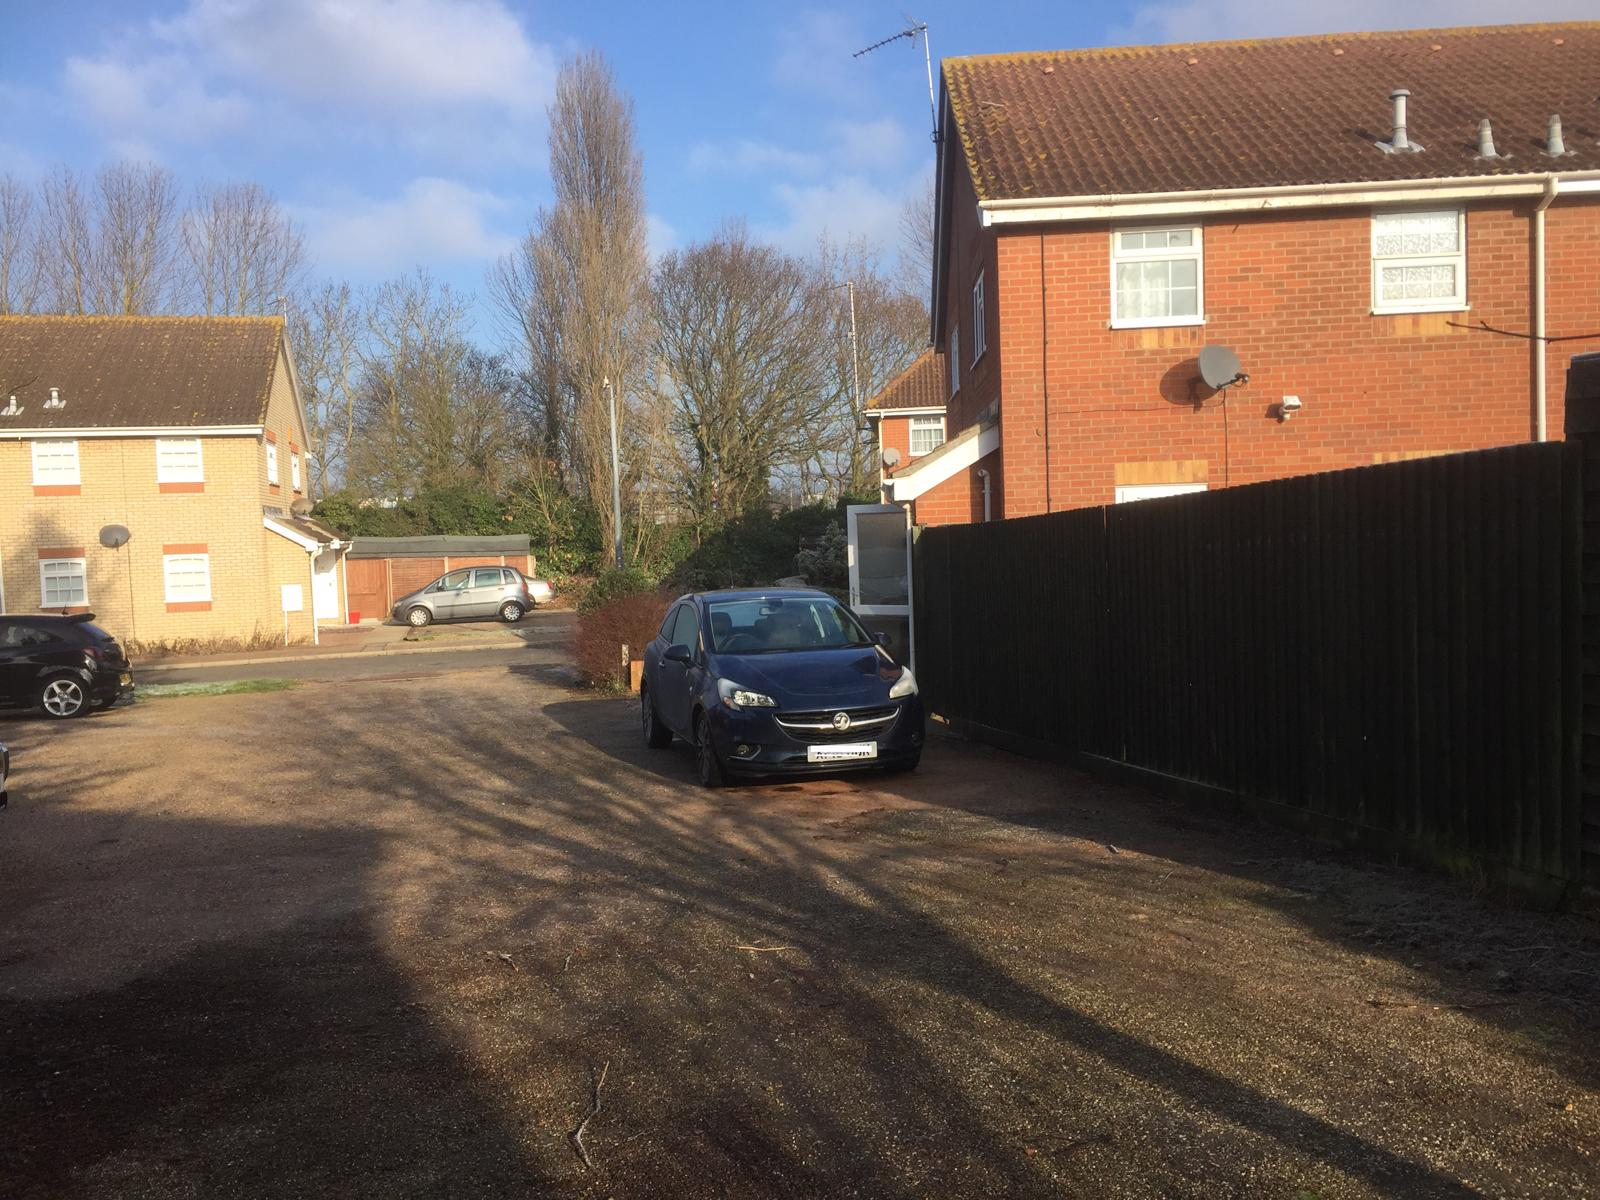 1 Bedroom End Terraced House Sold In Clacton On Sea Co15